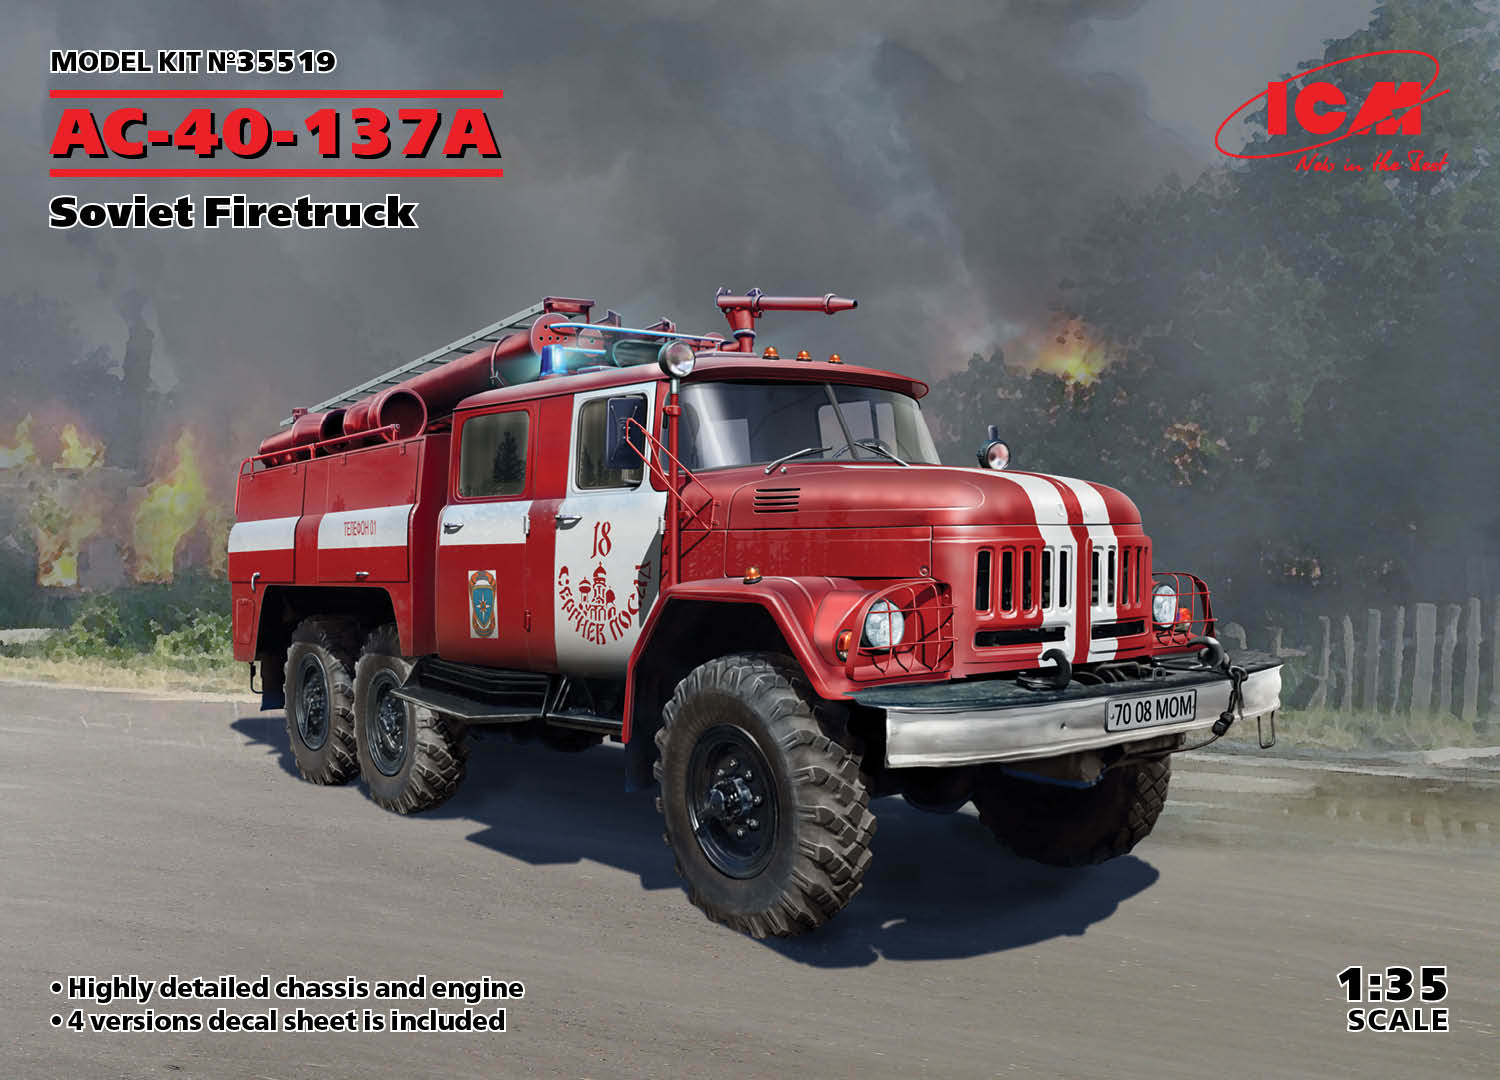 ICM AC-40-137A, Soviet Firetruck (new molds) 1/35 Scale